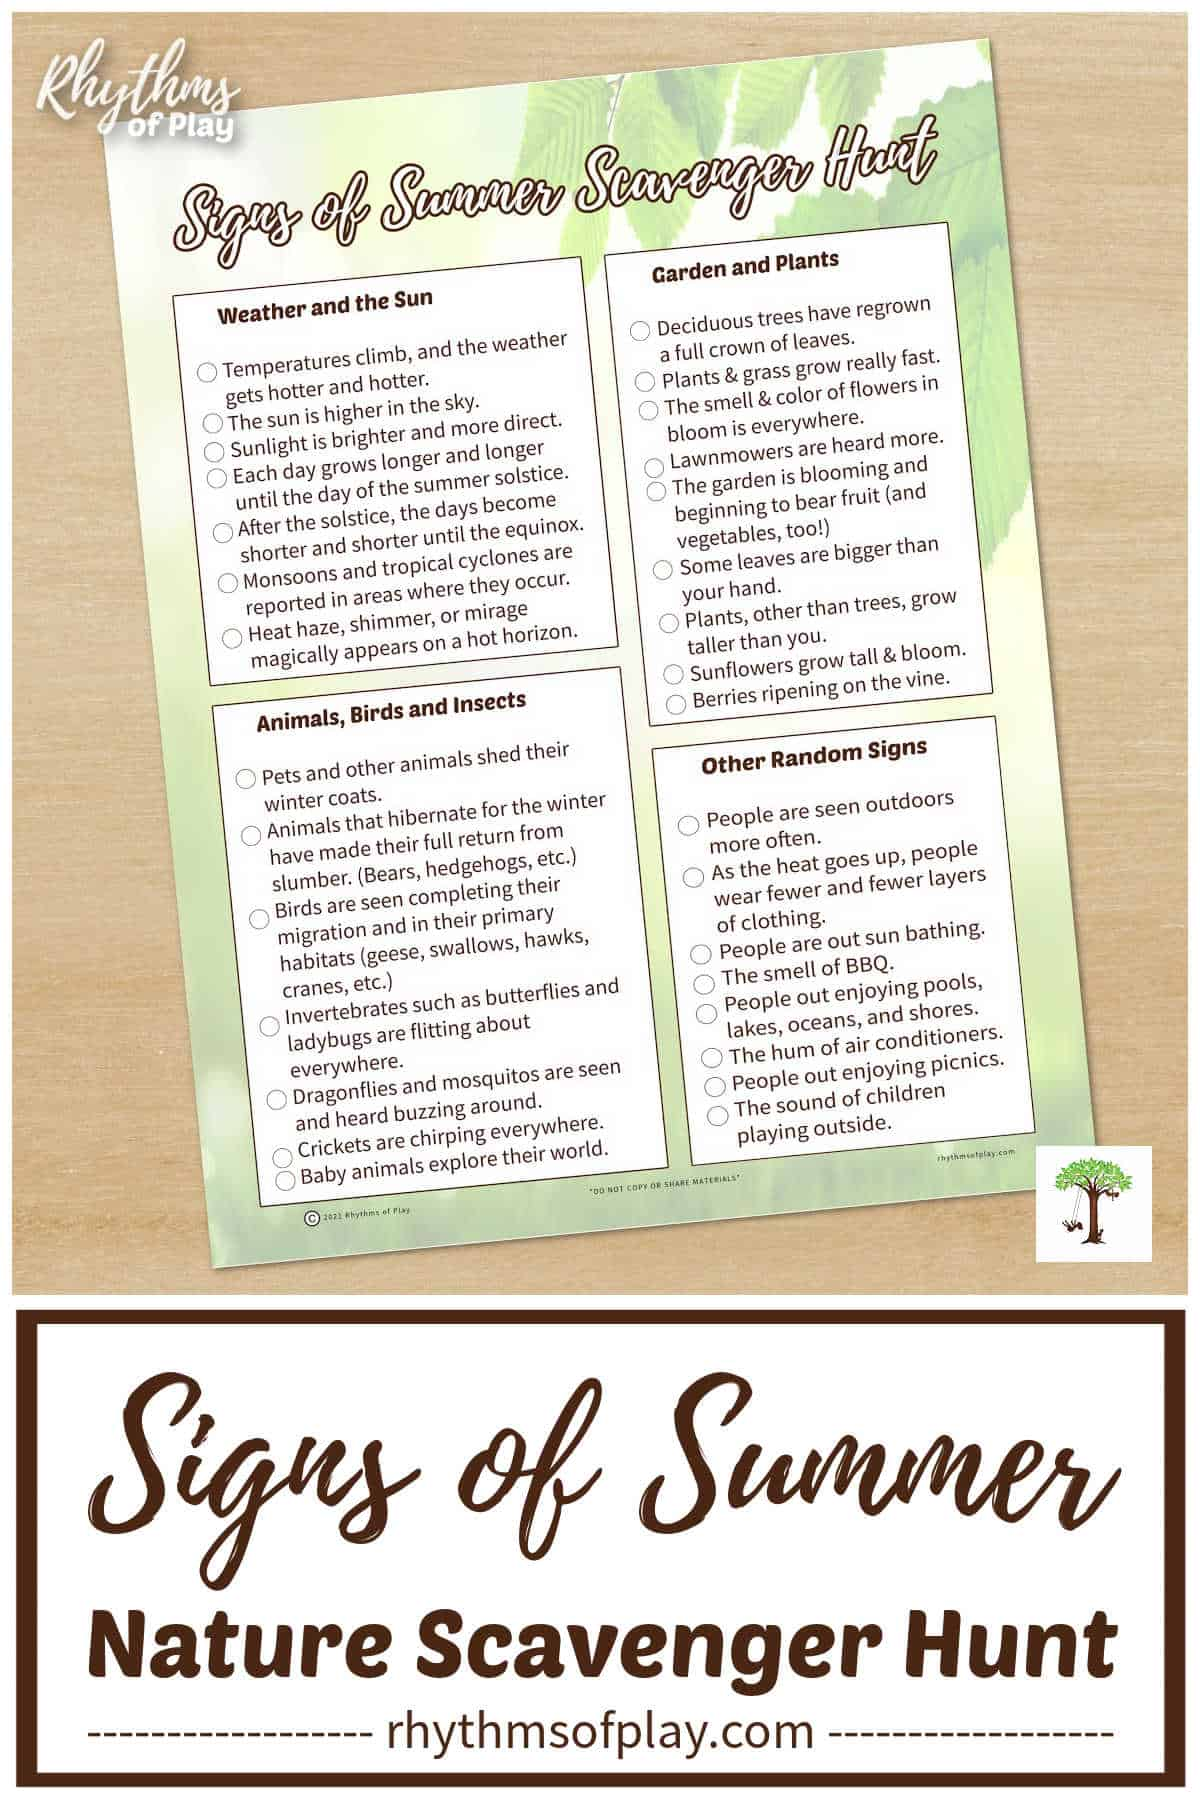 Photo of the first signs of summer nature scavenger Hunt printable for kids and adults